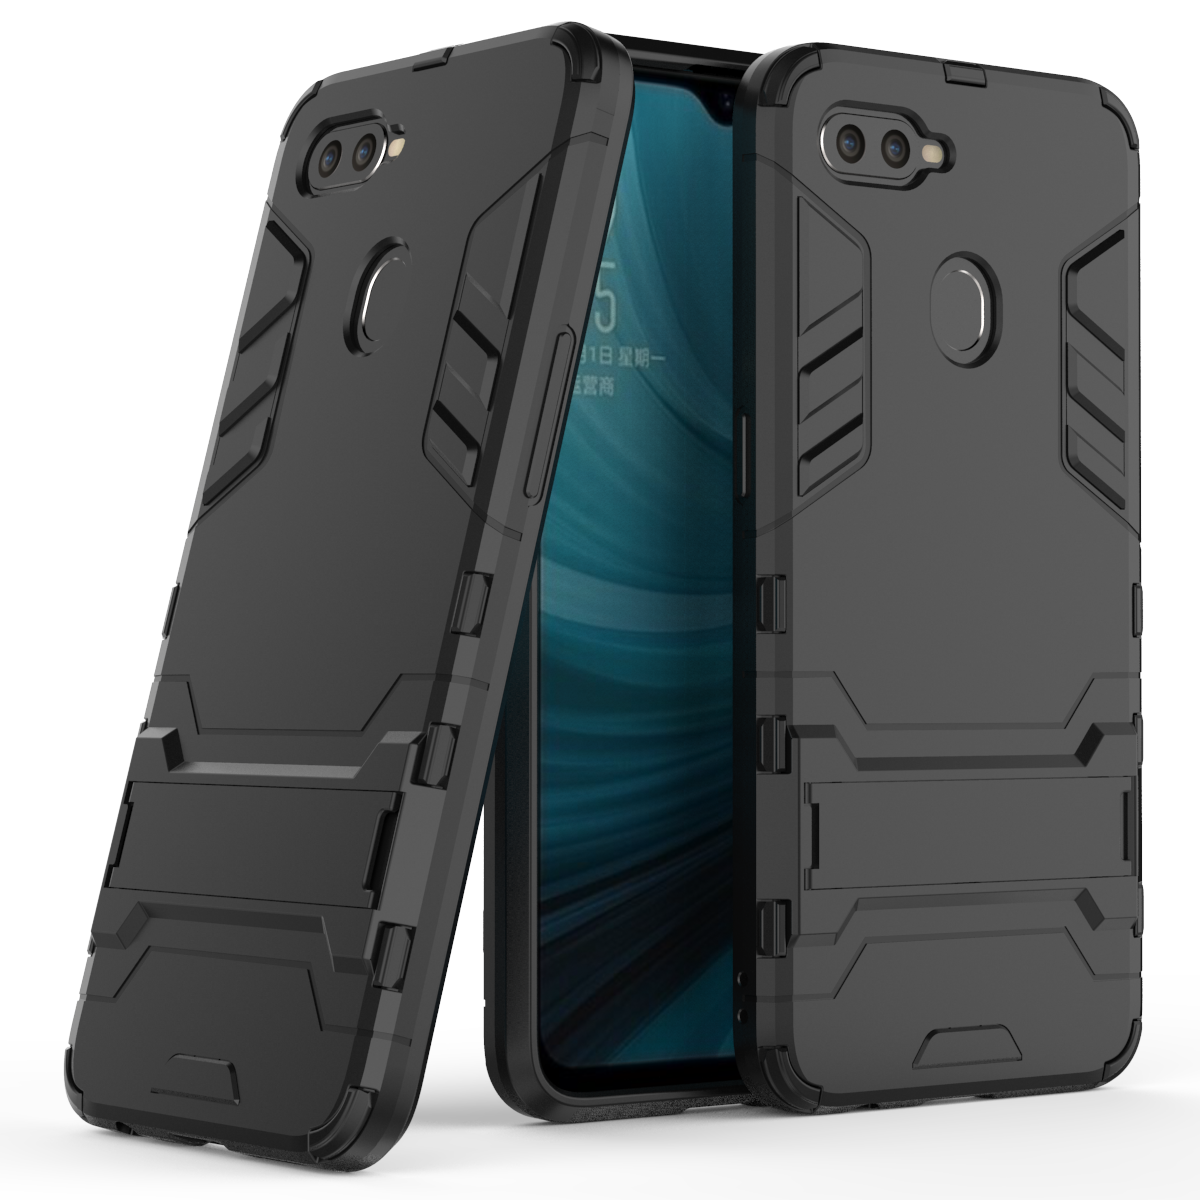 3D Shockproof Armor <font><b>Cases</b></font> For <font><b>OPPO</b></font> A3 <font><b>A33</b></font> A35 A37 A39 A5 A57 A59 A7 A73 A75 A75S A79 A7X A83 TPU Protective Stand Phone Cover image